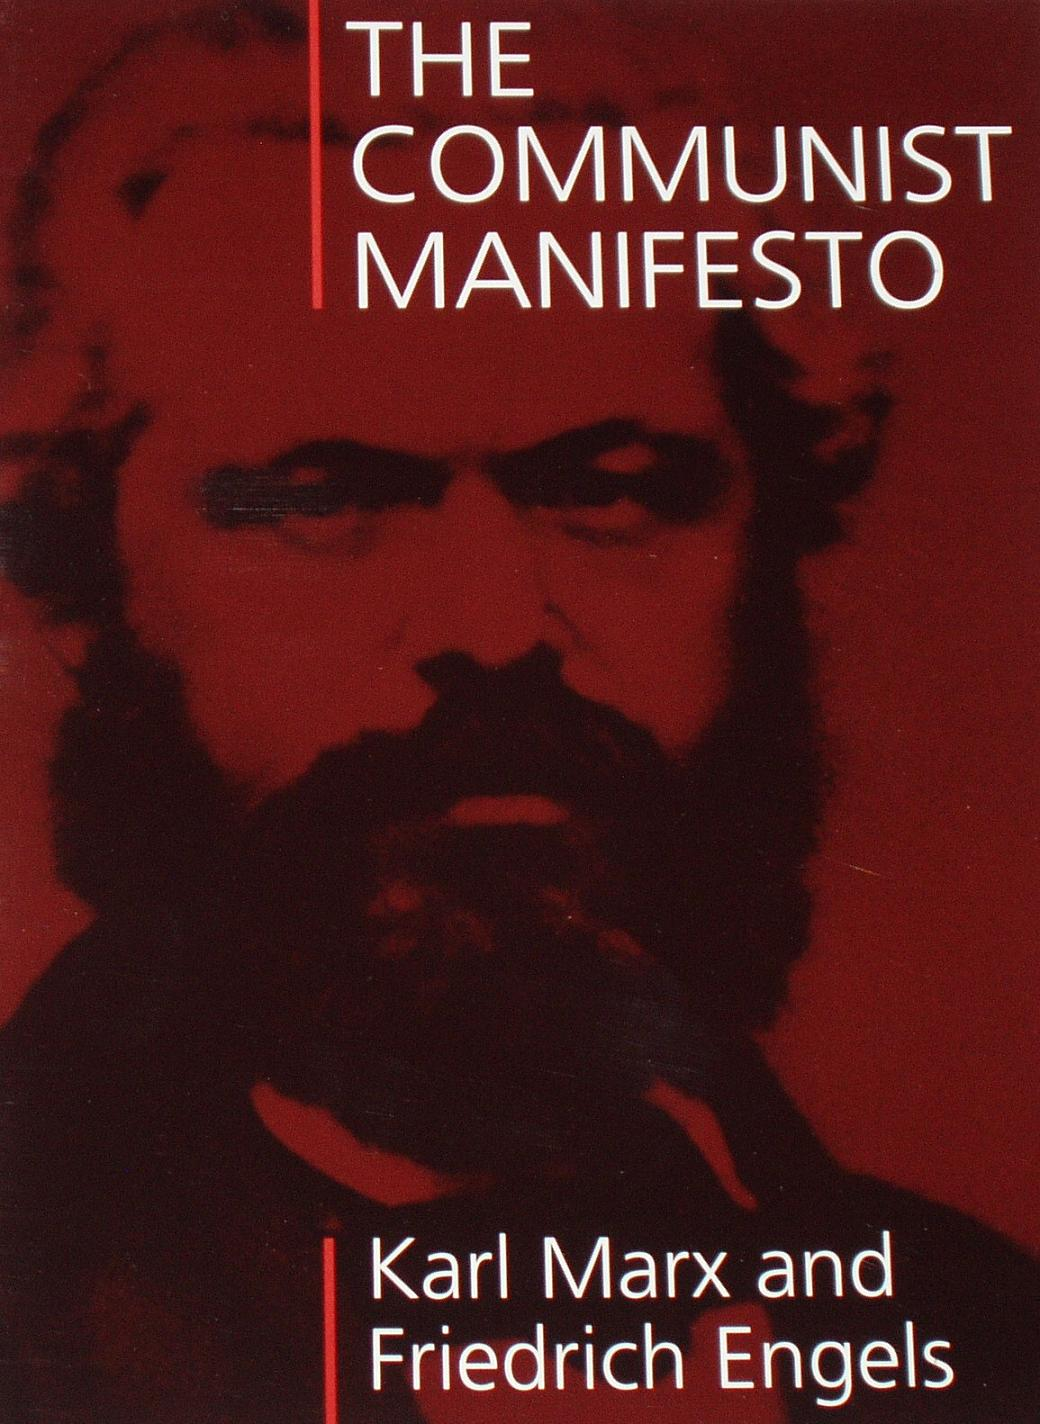 the communist manifesto by karl marx The communist manifesto by karl marx and friedrich engels changed the world it was a social political gospel for the economically disheartened i have put together a free copy of karl marx in pdf here.